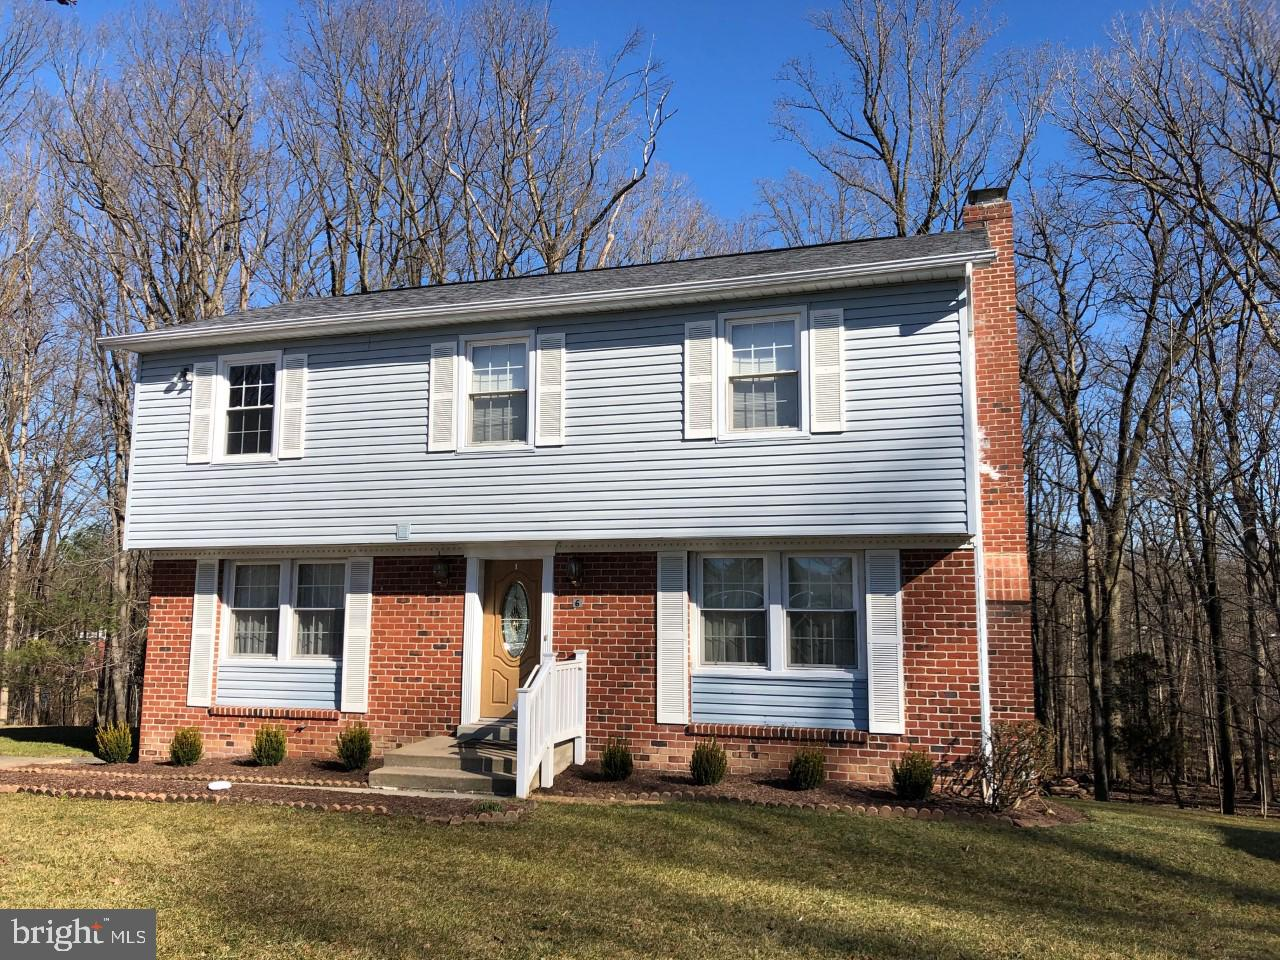 Great home in a great community.  Cul-de-sac location that backs to lush woods.  Huge deck to enjoy the view and two sheds. Updated kitchen and newly (2018) finished basement with wood burning fireplace.  Updated bathrooms.  New AC in 2018. House humidifier.  Four large bedrooms on the upper level and a possible 5th bedroom/office/bonus room in lower level. Community includes open space and a community pool.  The perfect place to call HOME!